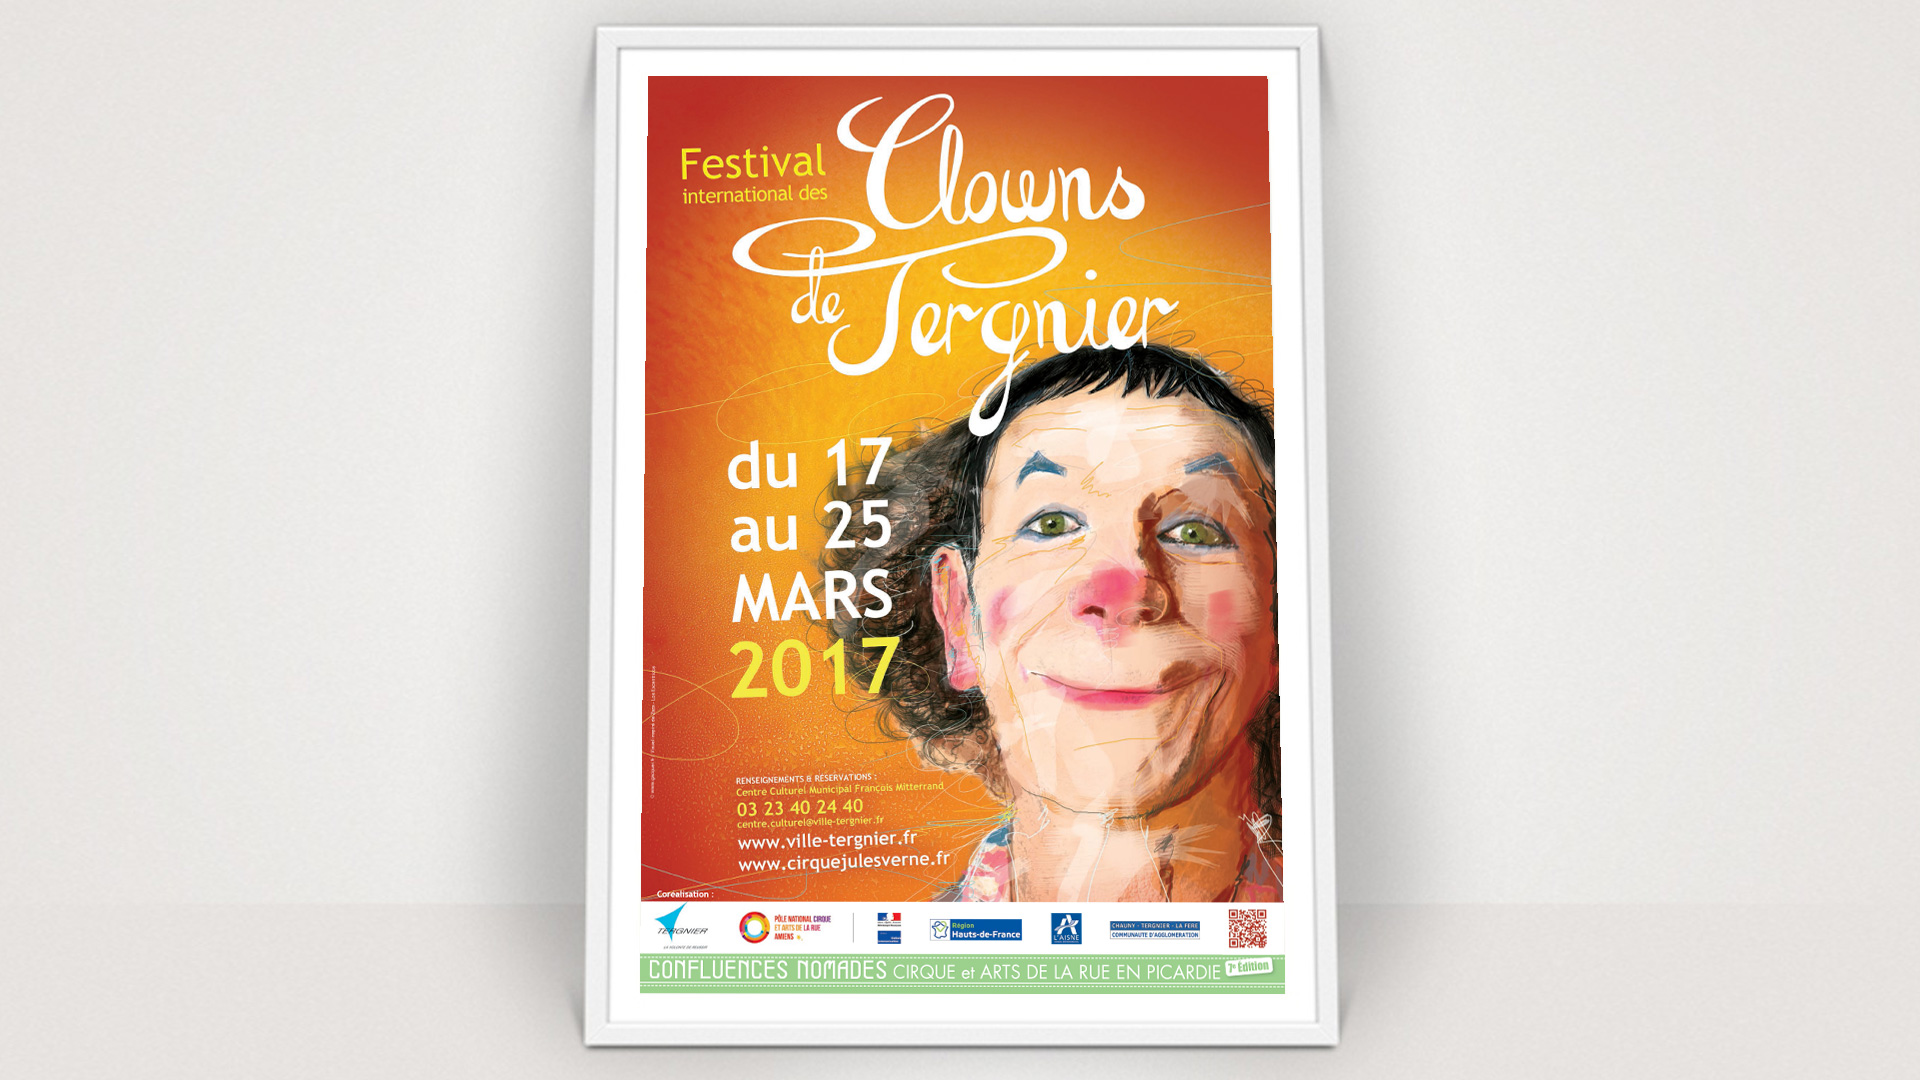 Festival International des Clowns de Tergnier 2017